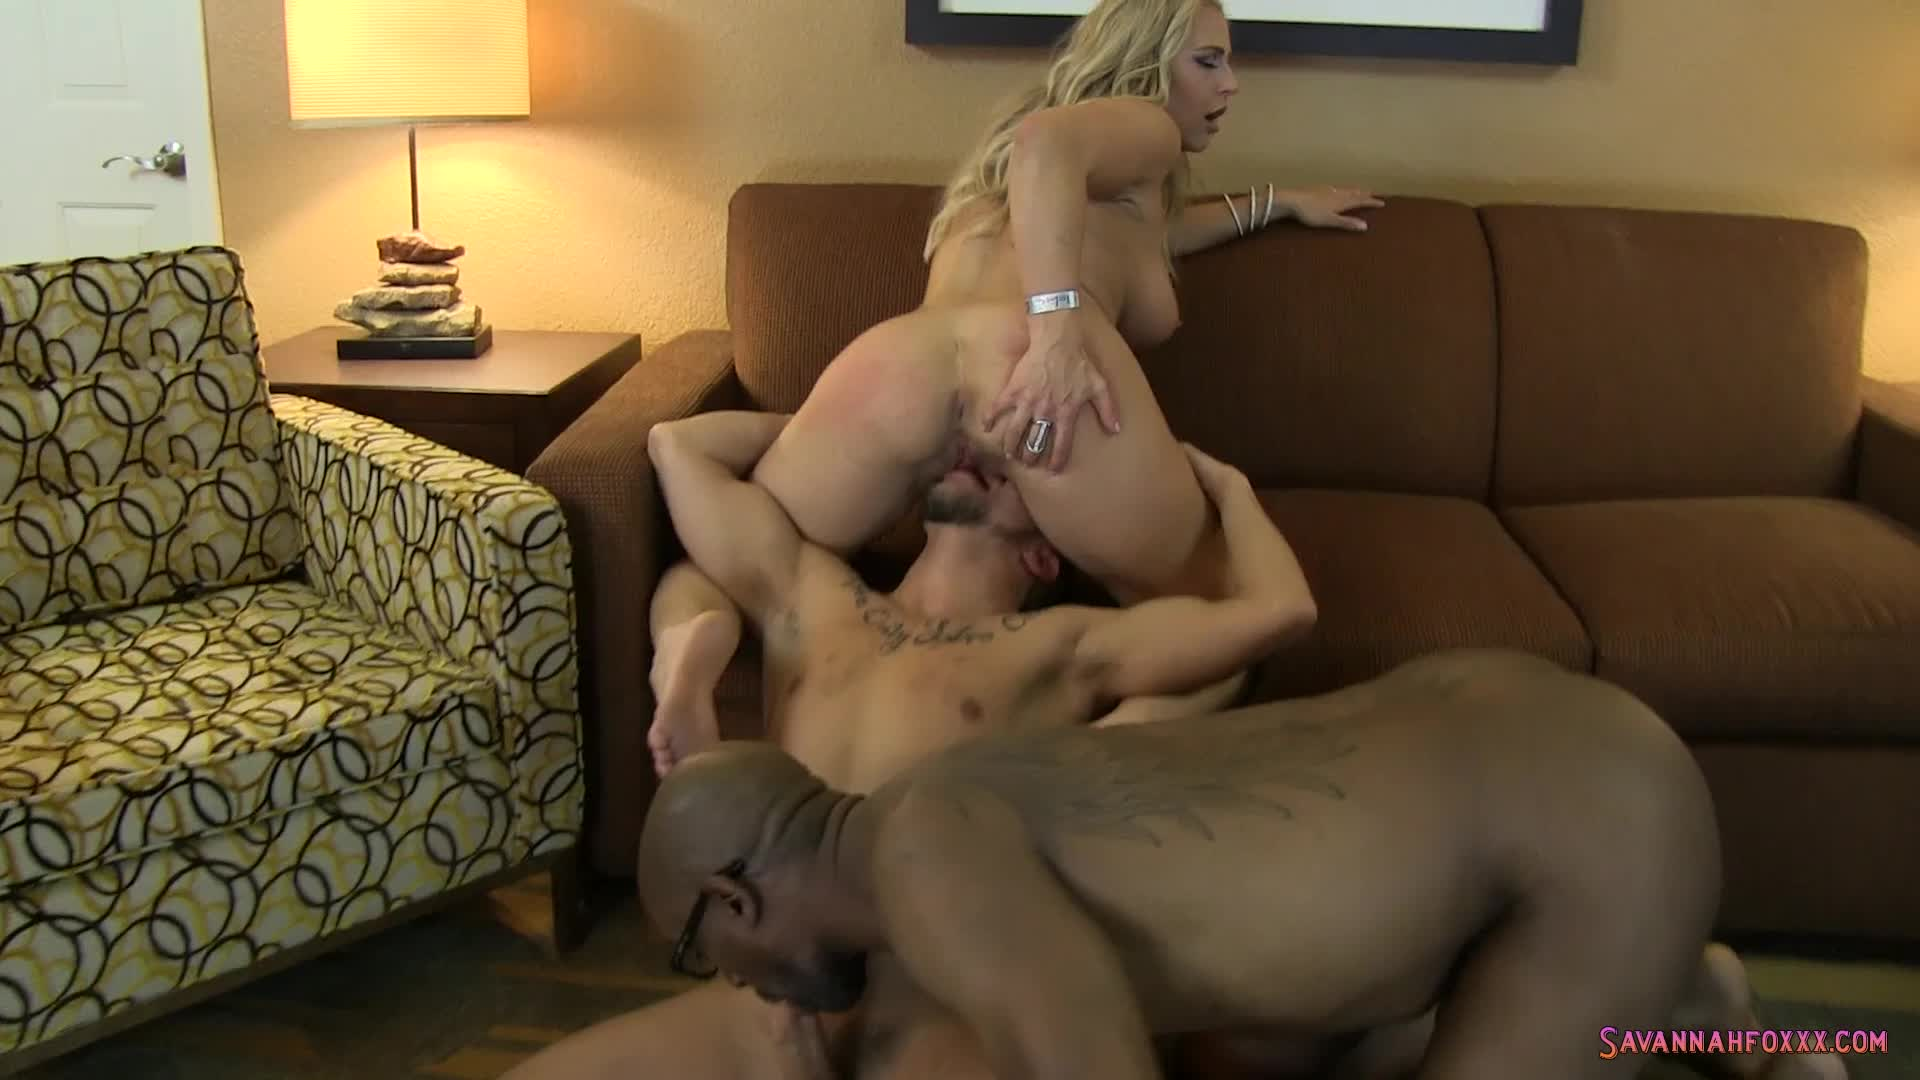 Savannah Fox'd vid